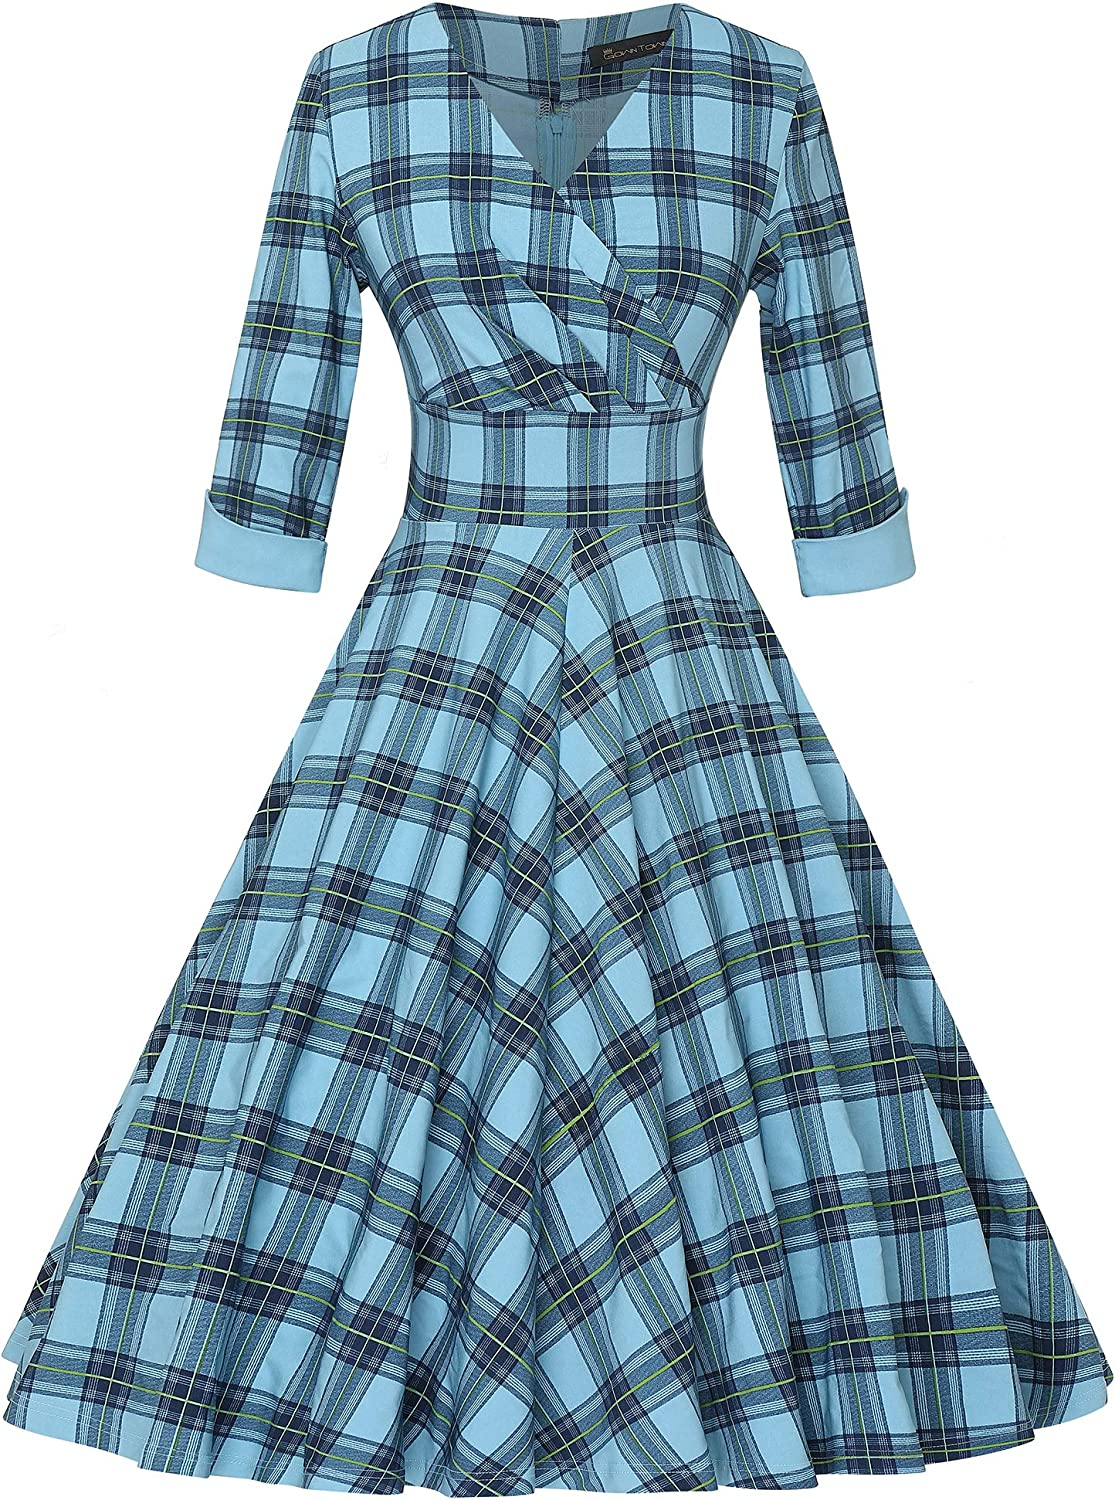 1950s Housewife Dress | 50s Day Dresses GownTown Womens 1950s Retro Vintage Wrap Party Swing Dress $32.99 AT vintagedancer.com